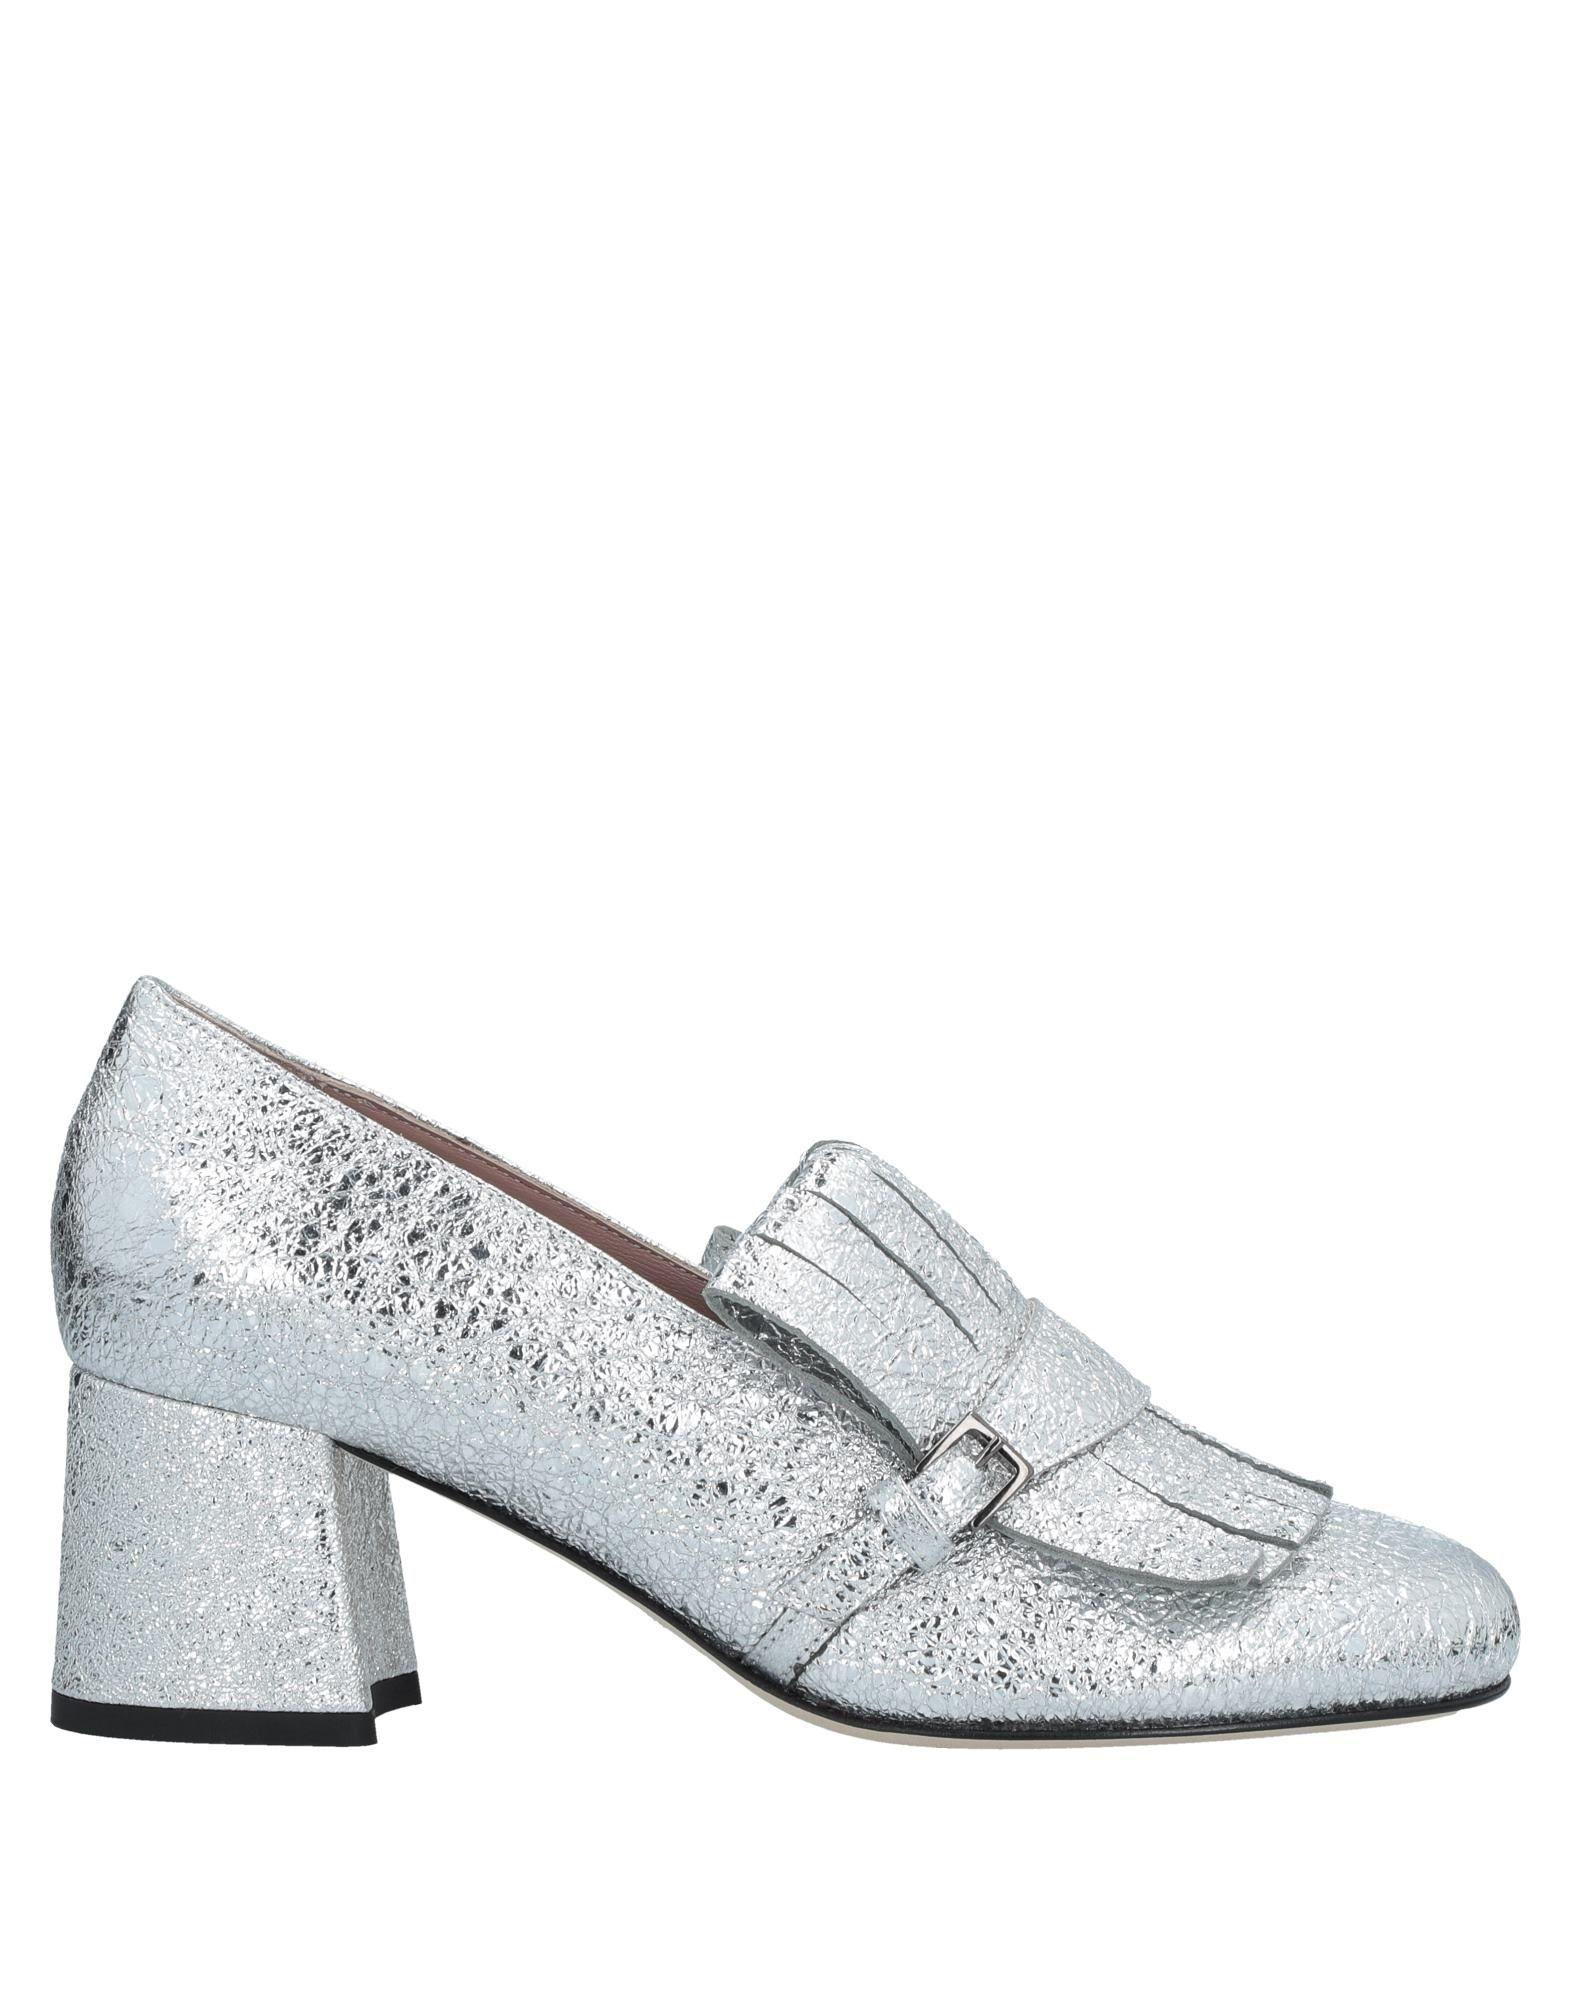 Gianna Meliani Loafers In Silver